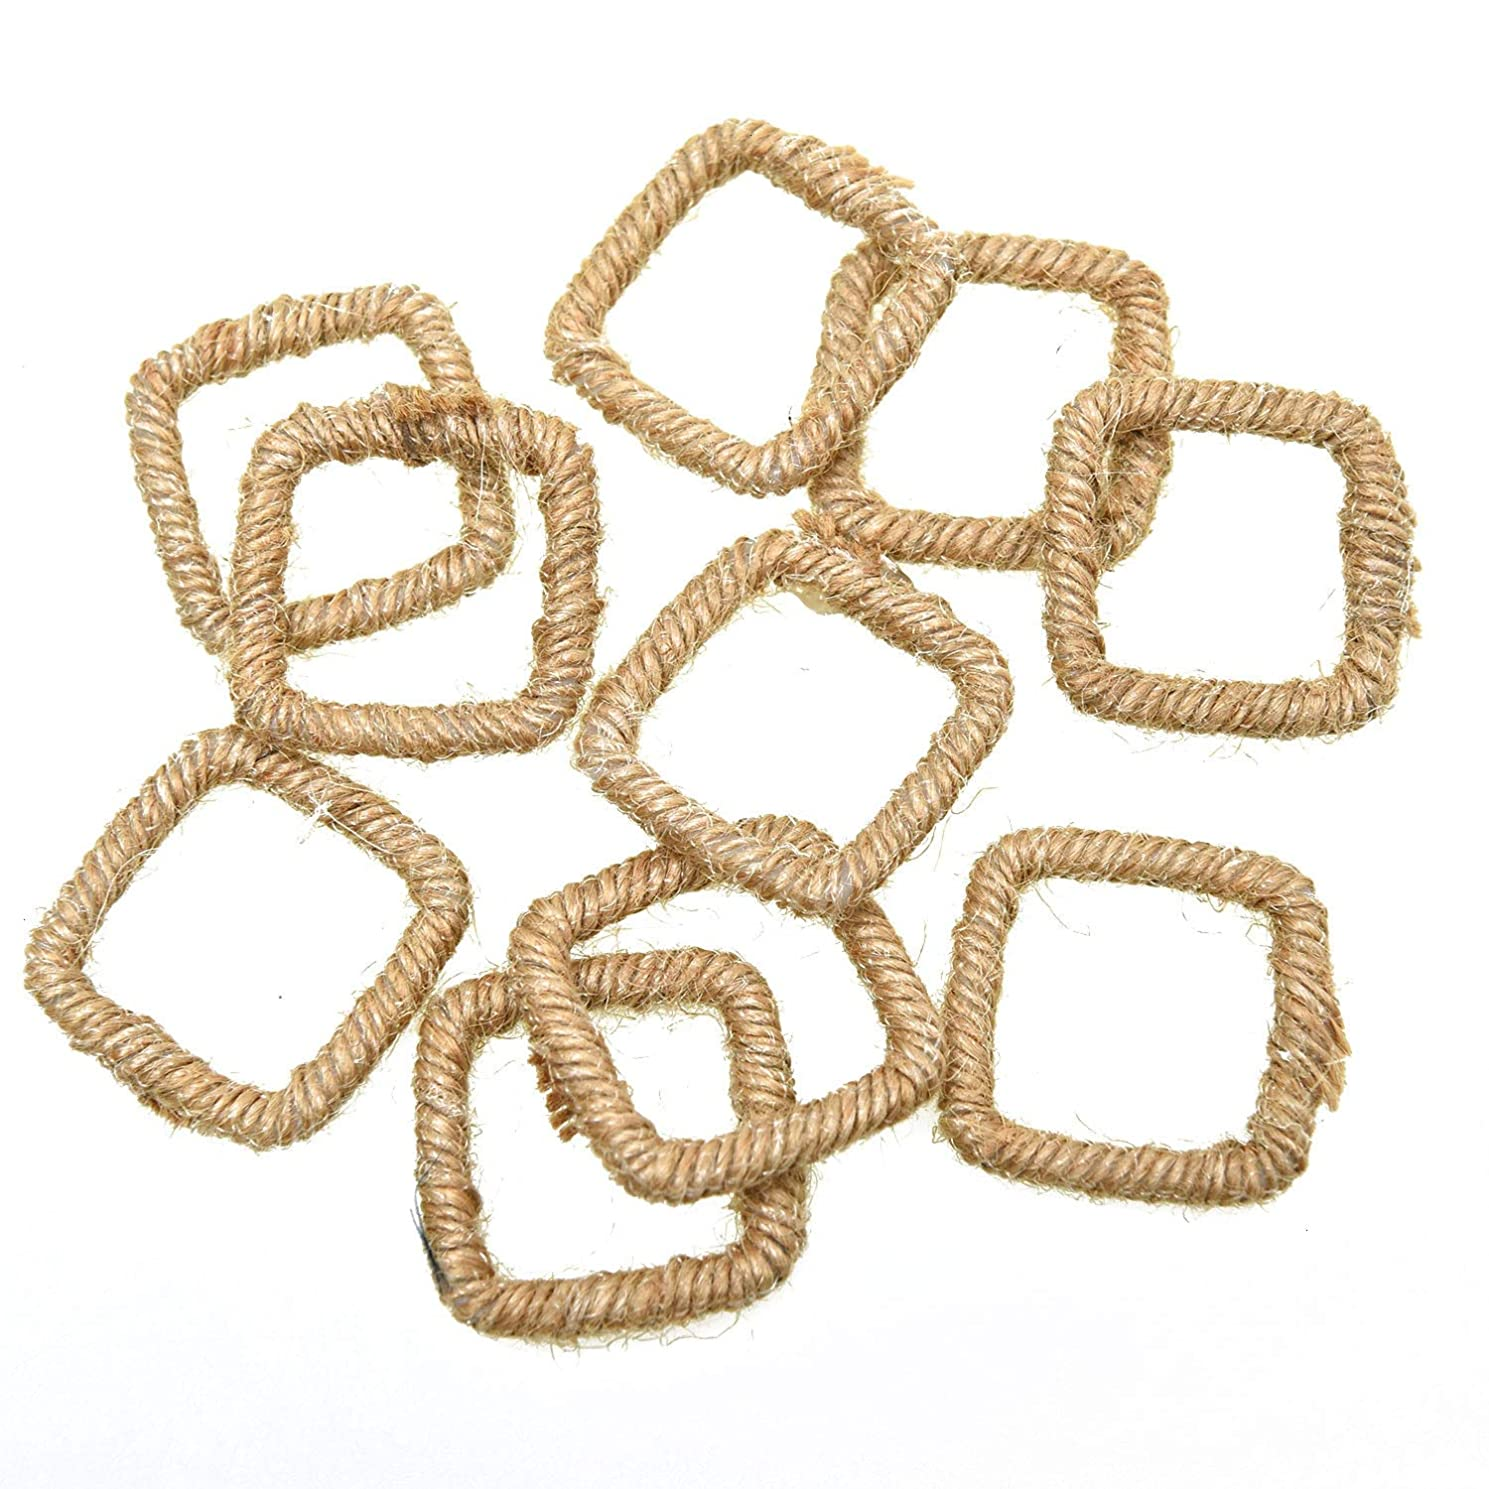 Monrocco 10Pcs Geometric Charms Burlap Jute Hemp Wire Line Charm Pendant for Jewelry Making Earring DIY Craft Jewelry Fingdings (Khaki)